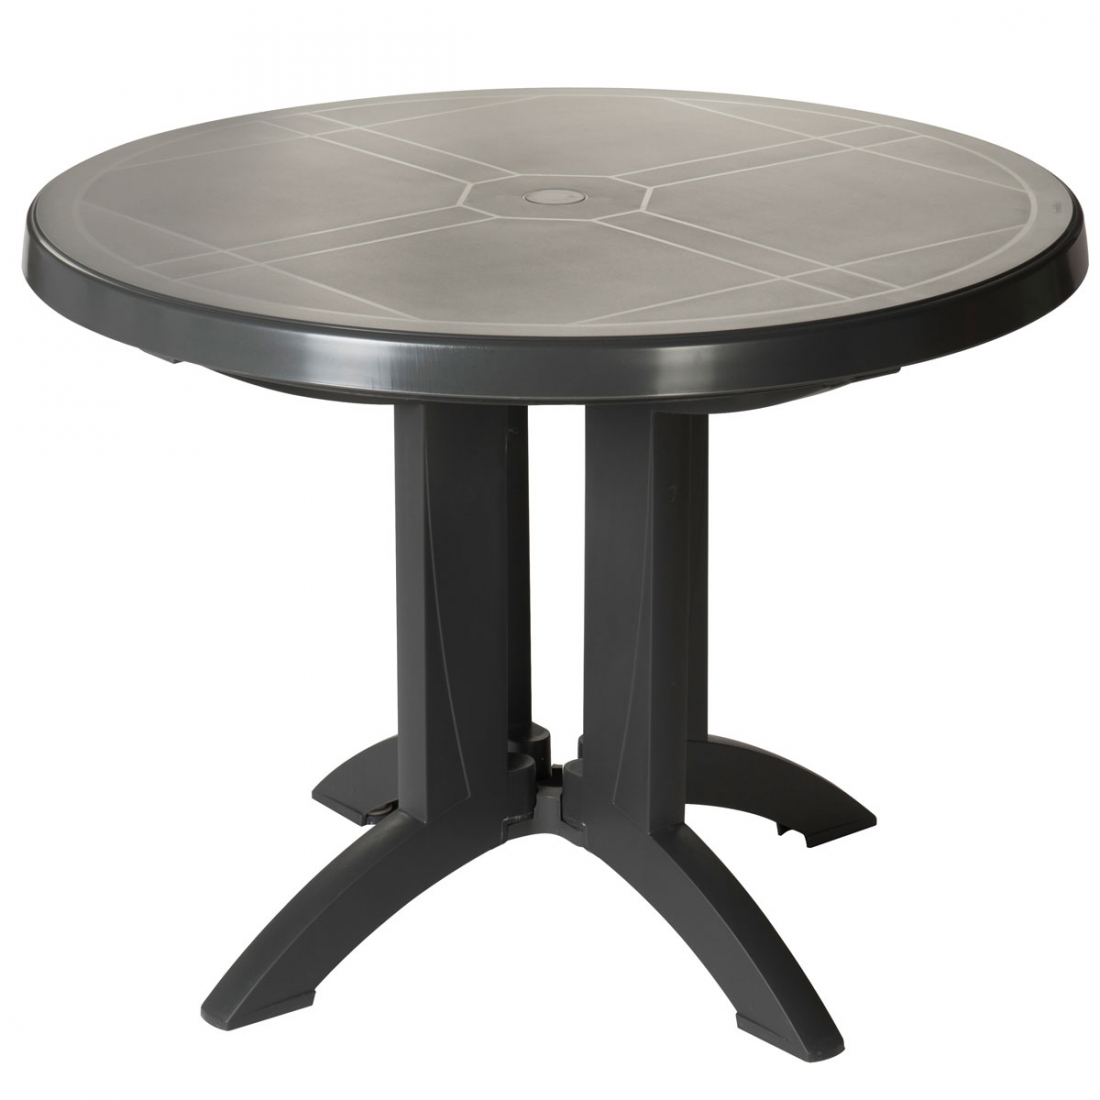 Stunning table ronde de jardin grosfillex ideas amazing for Table ronde 6 places